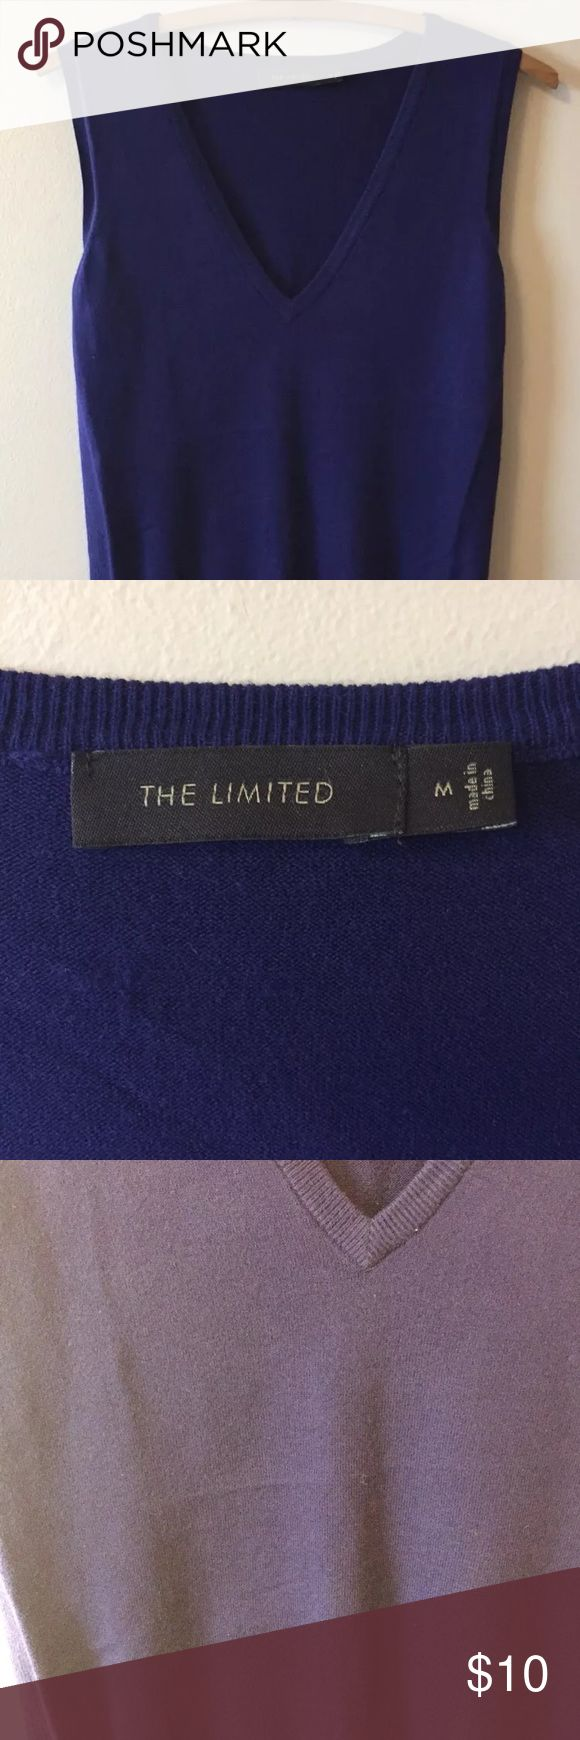 The limited deep purple sweater vest medium v Neck Deep purple sweater vest size medium. Excellent condition.  All items from smoke and pet free home. Flaws and defects will be listed in description and photographed as well if applicable. Questions welcome and thanks for the consideration. The Limited Sweaters V-Necks